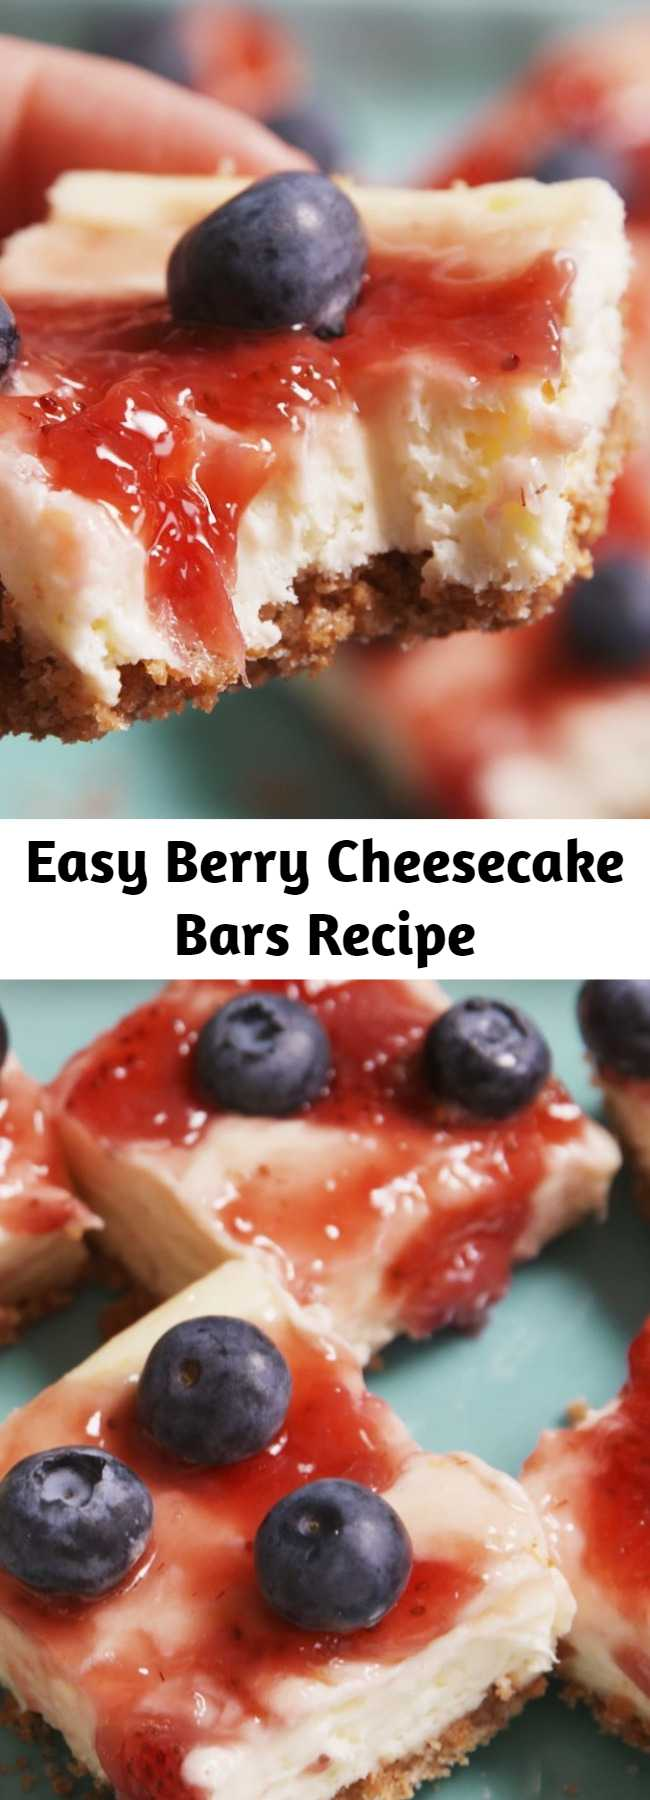 Easy Berry Cheesecake Bars Recipe - Treat yourself to a piece of creamy, fruity goodness.